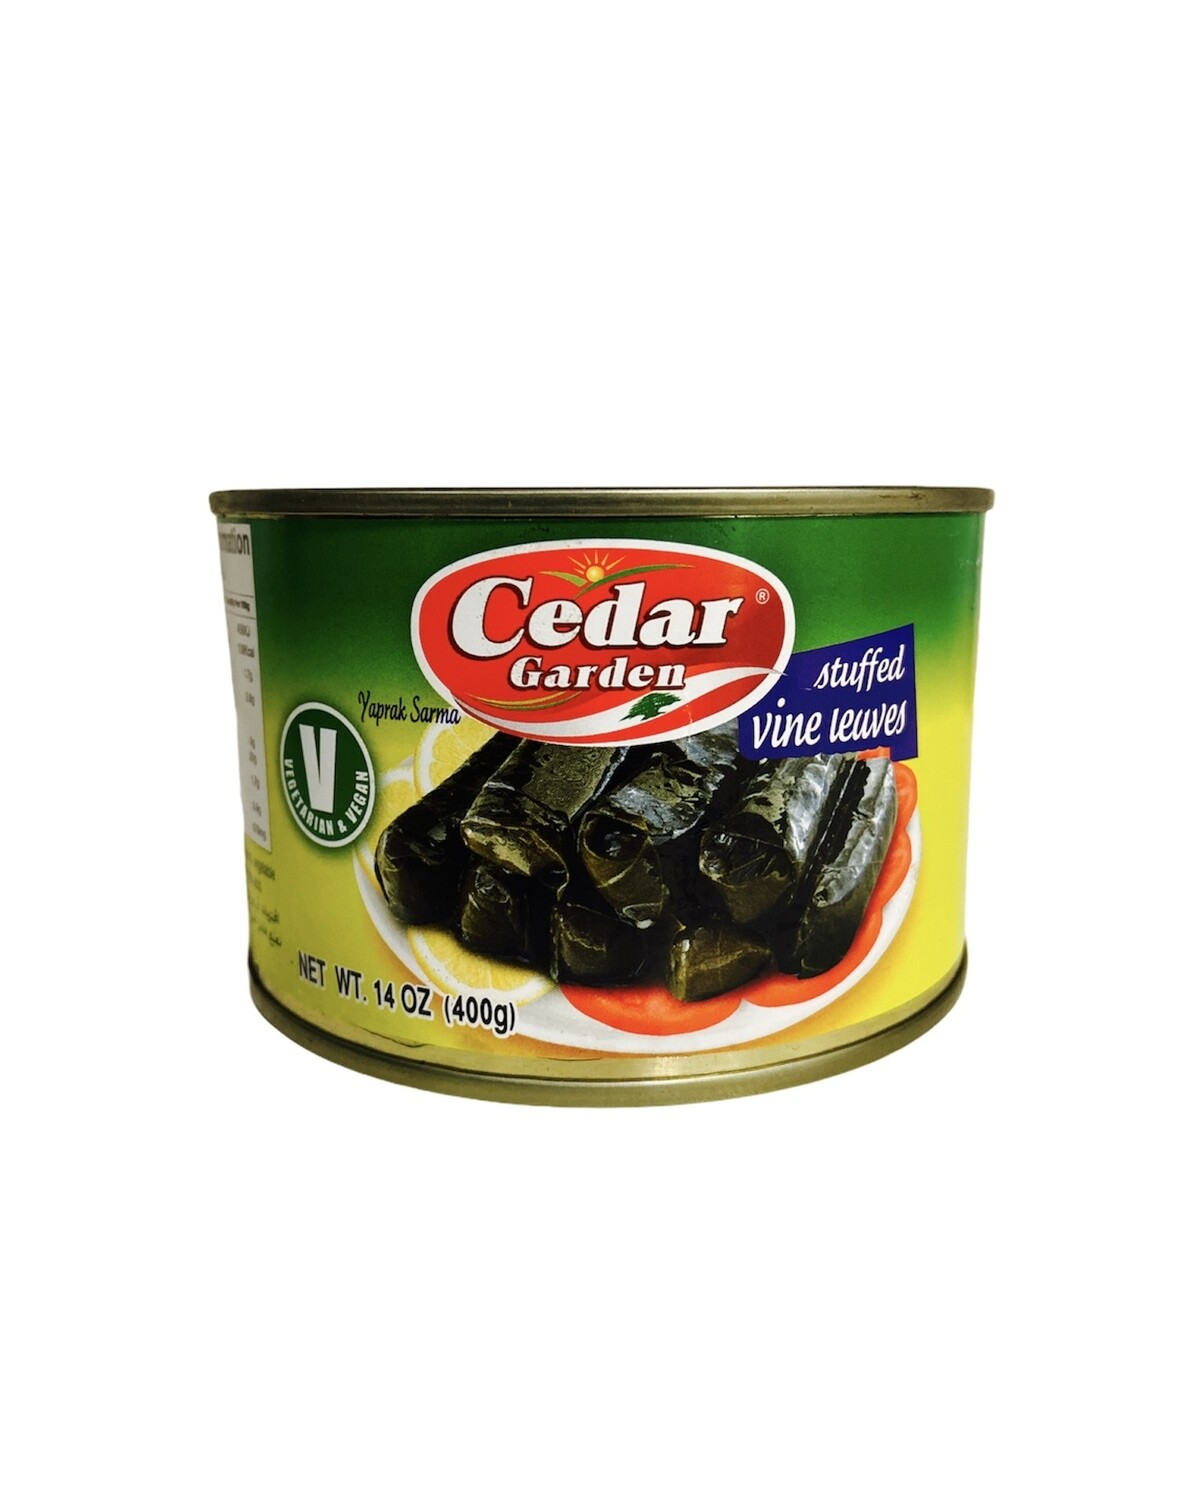 Cedar Garden Stuffed Grape Leaves 24x400g